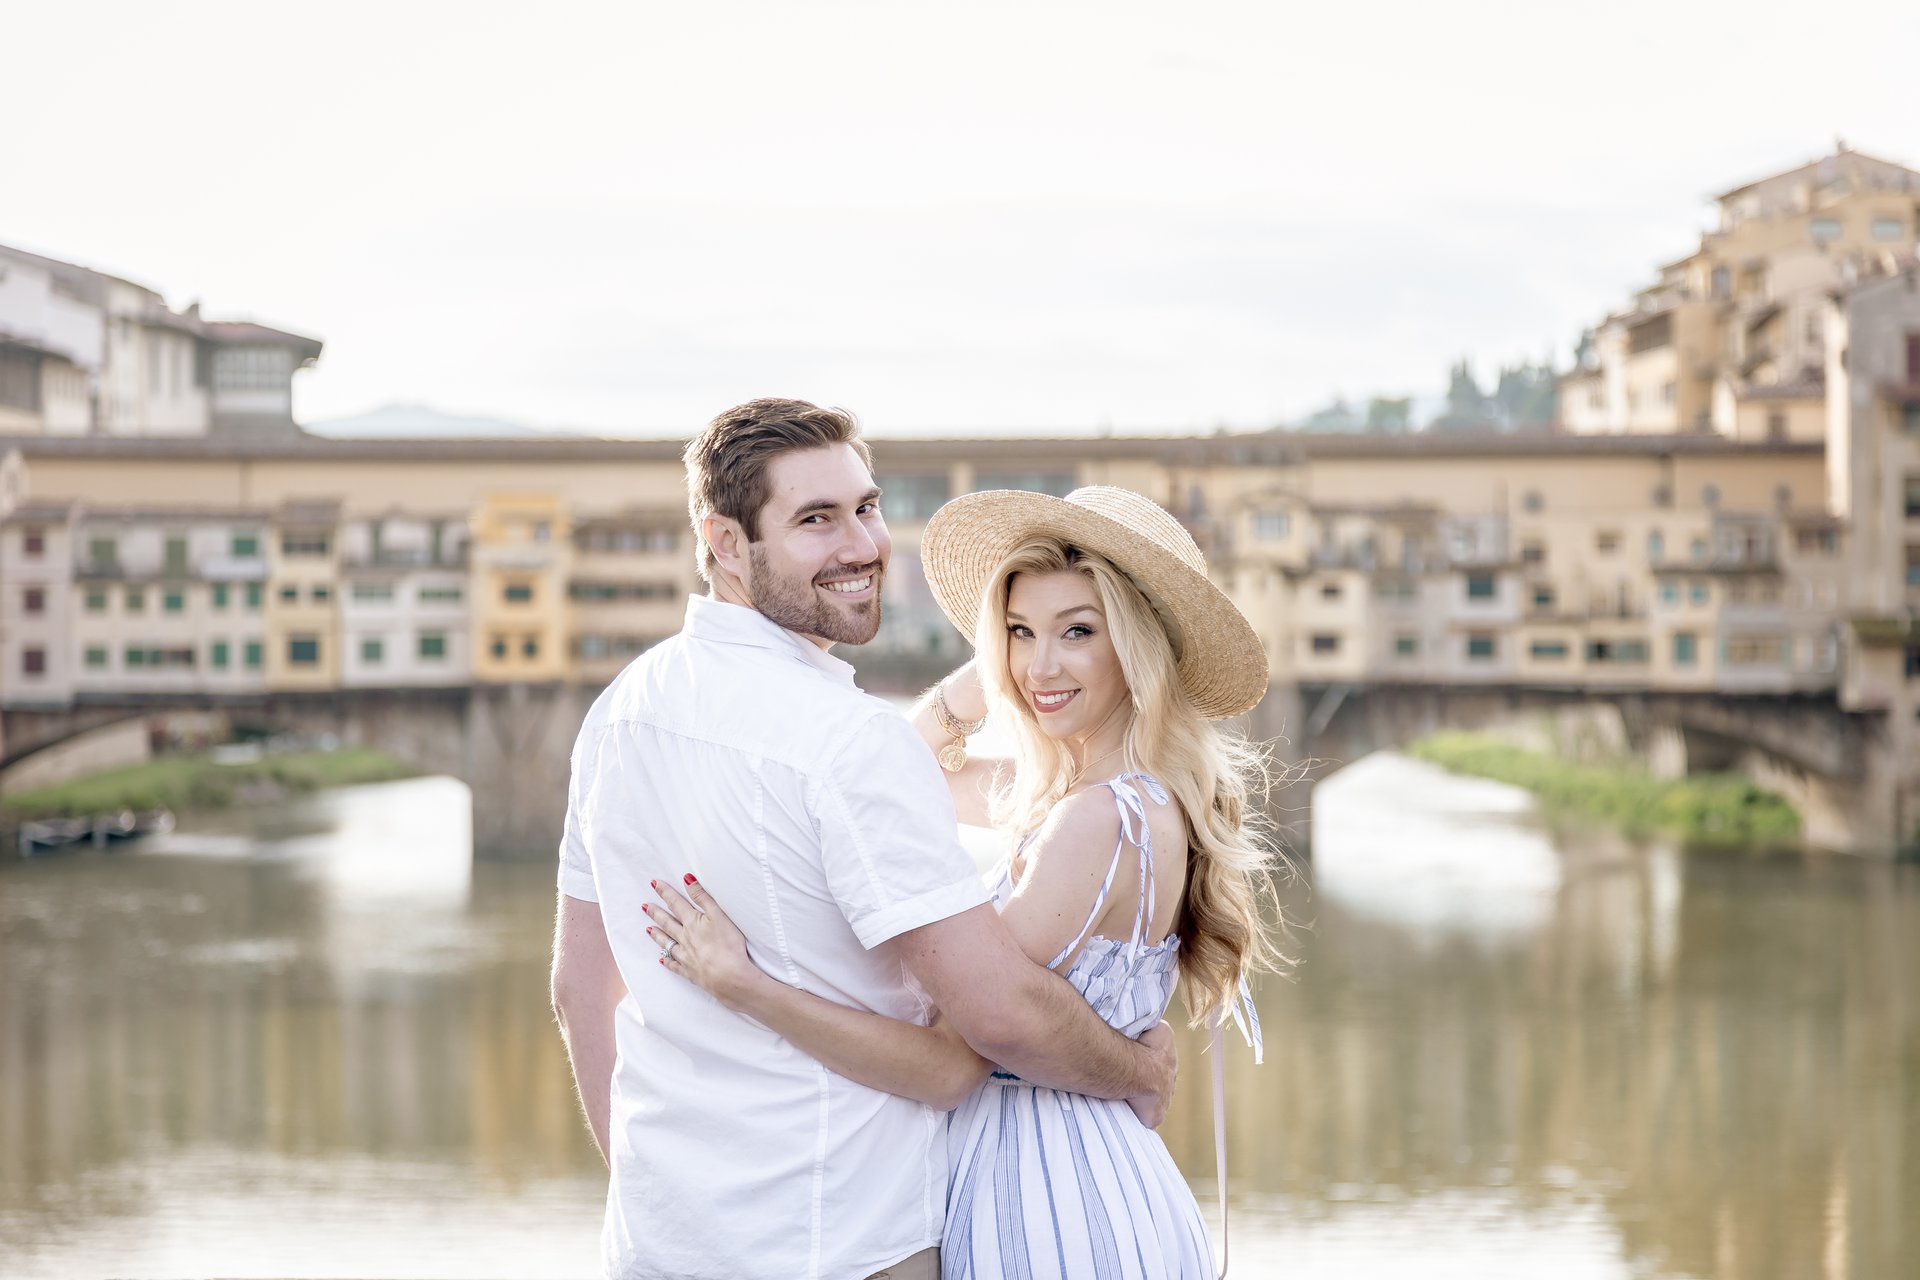 Flytographer Travel Story - Our Fairytale trip to Tuscany